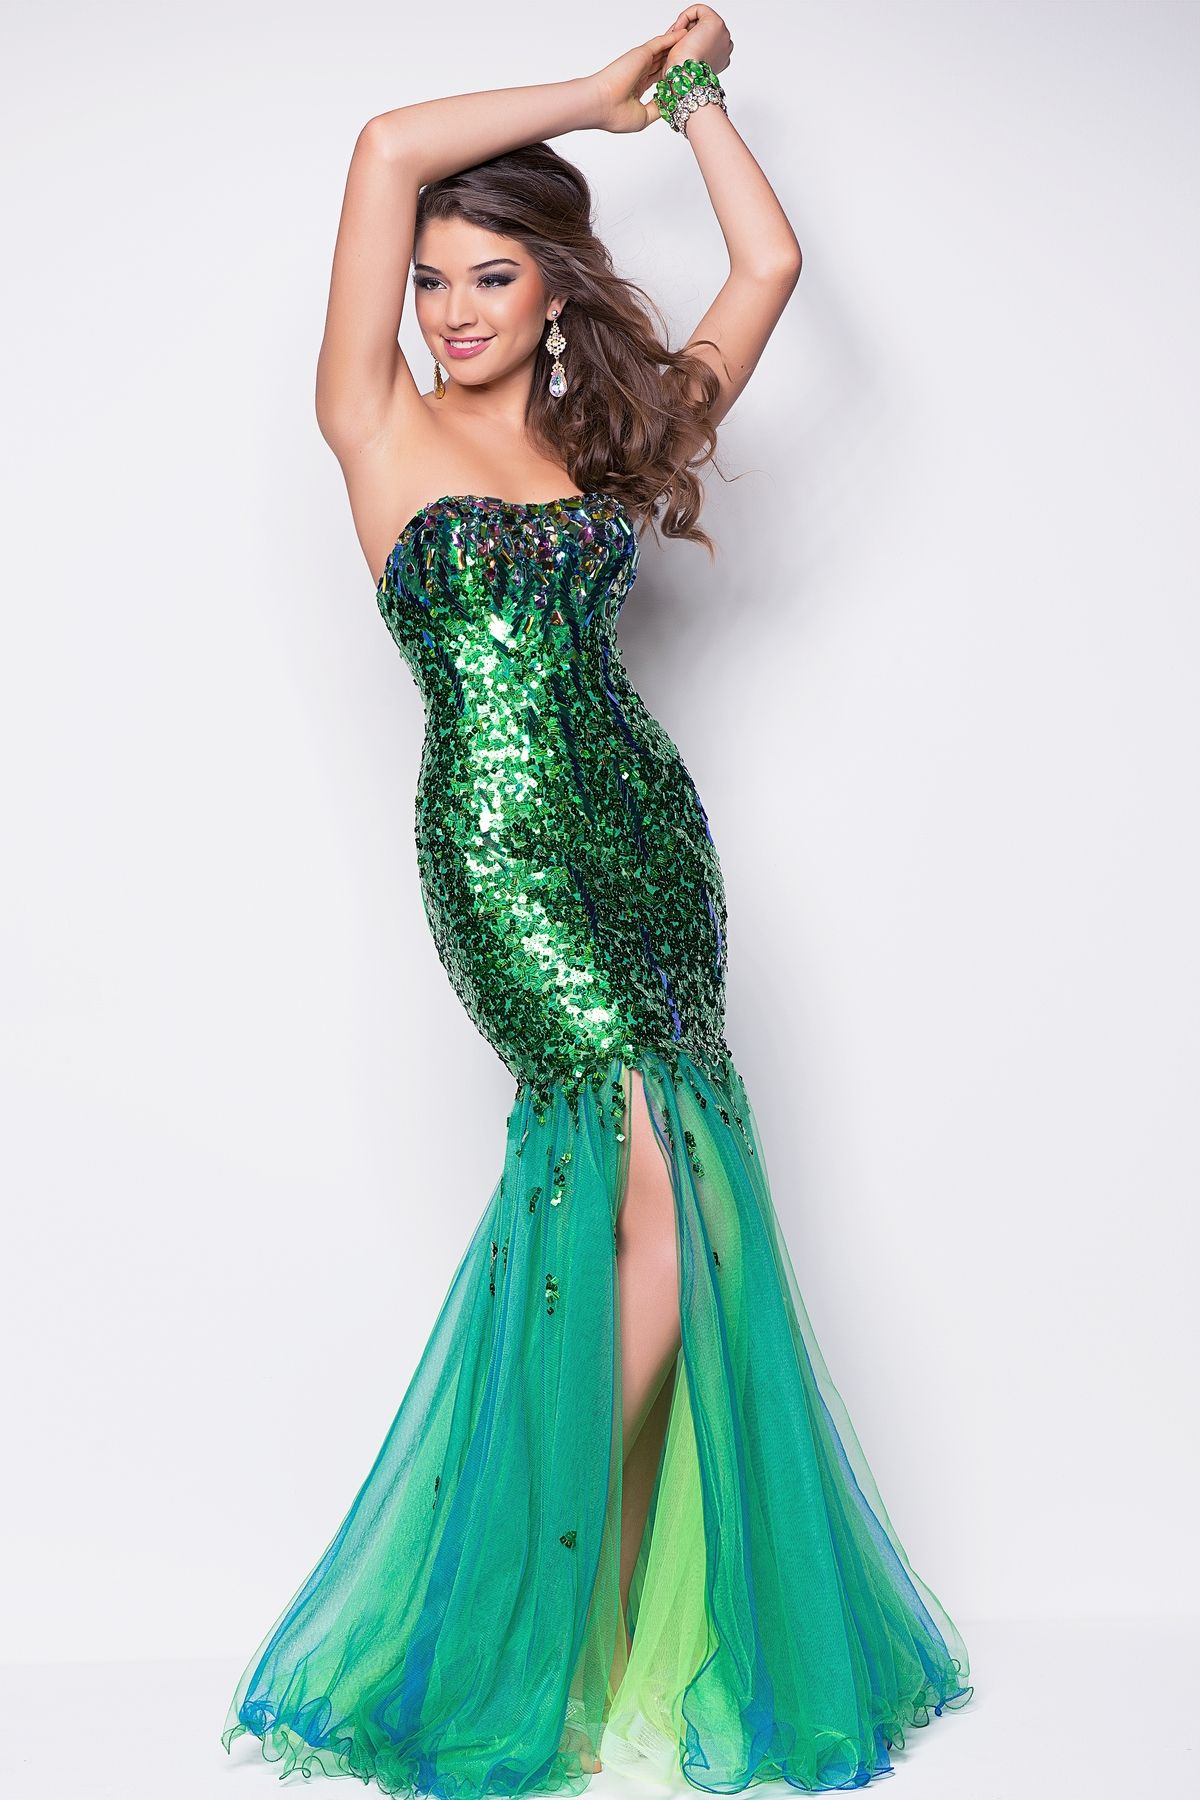 Beads and sheer rock this sexy prom dress this hot dance gown is